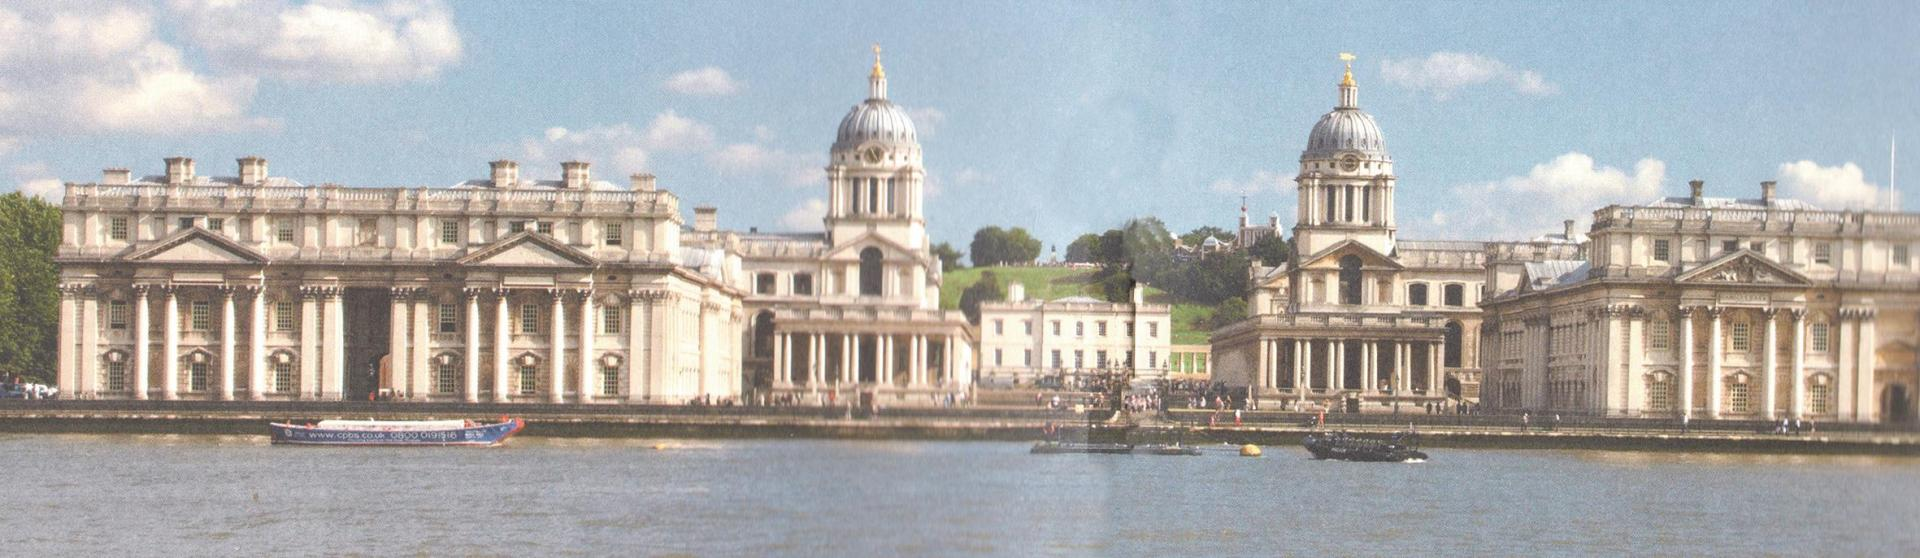 The chapel in the Old Royal Naval College at Greenwich, dedicated to saints Peter and Paul.